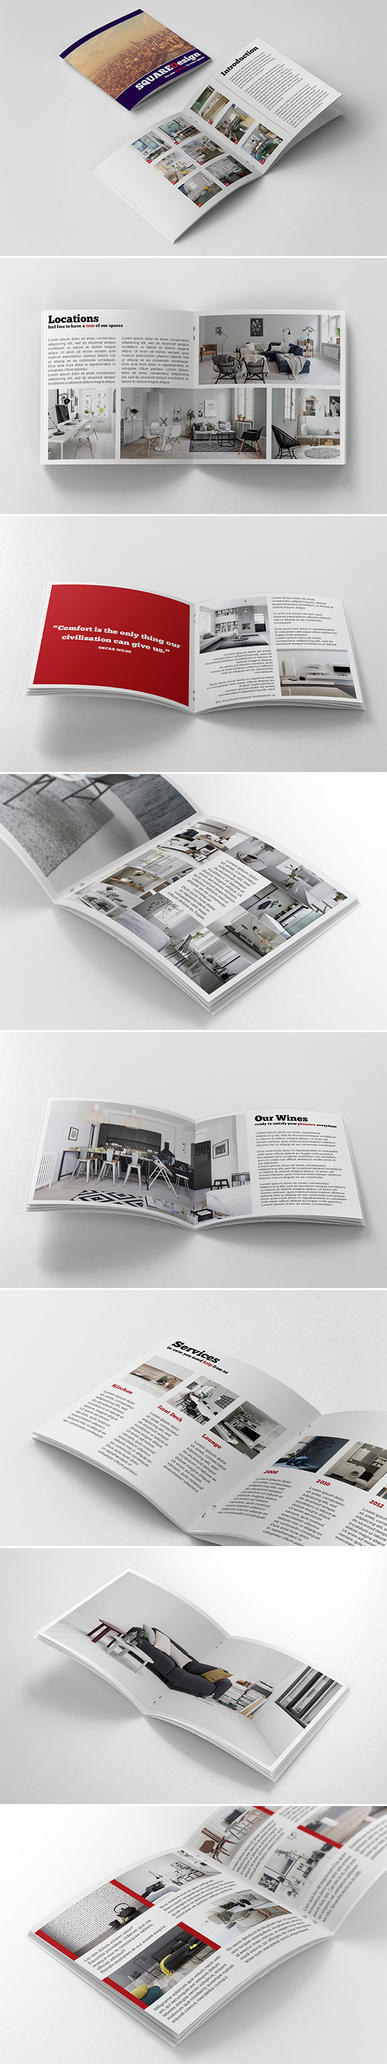 Square Design Brochure by andre2886